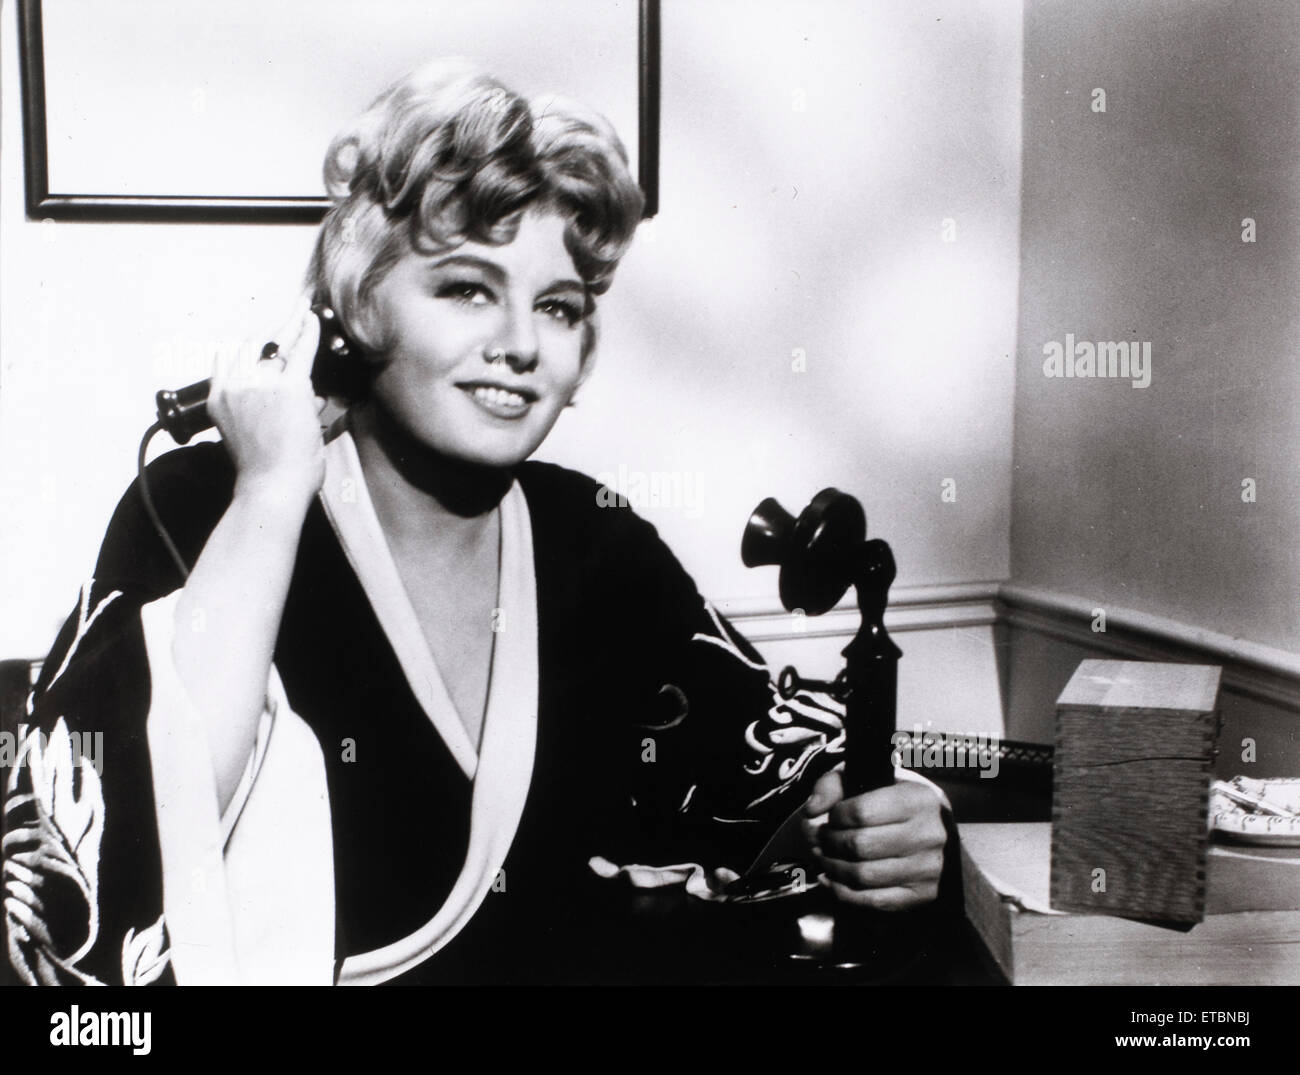 Shelley Winters, Publicity Portrait for the Film 'A House is not a Home', 1964 - Stock Image